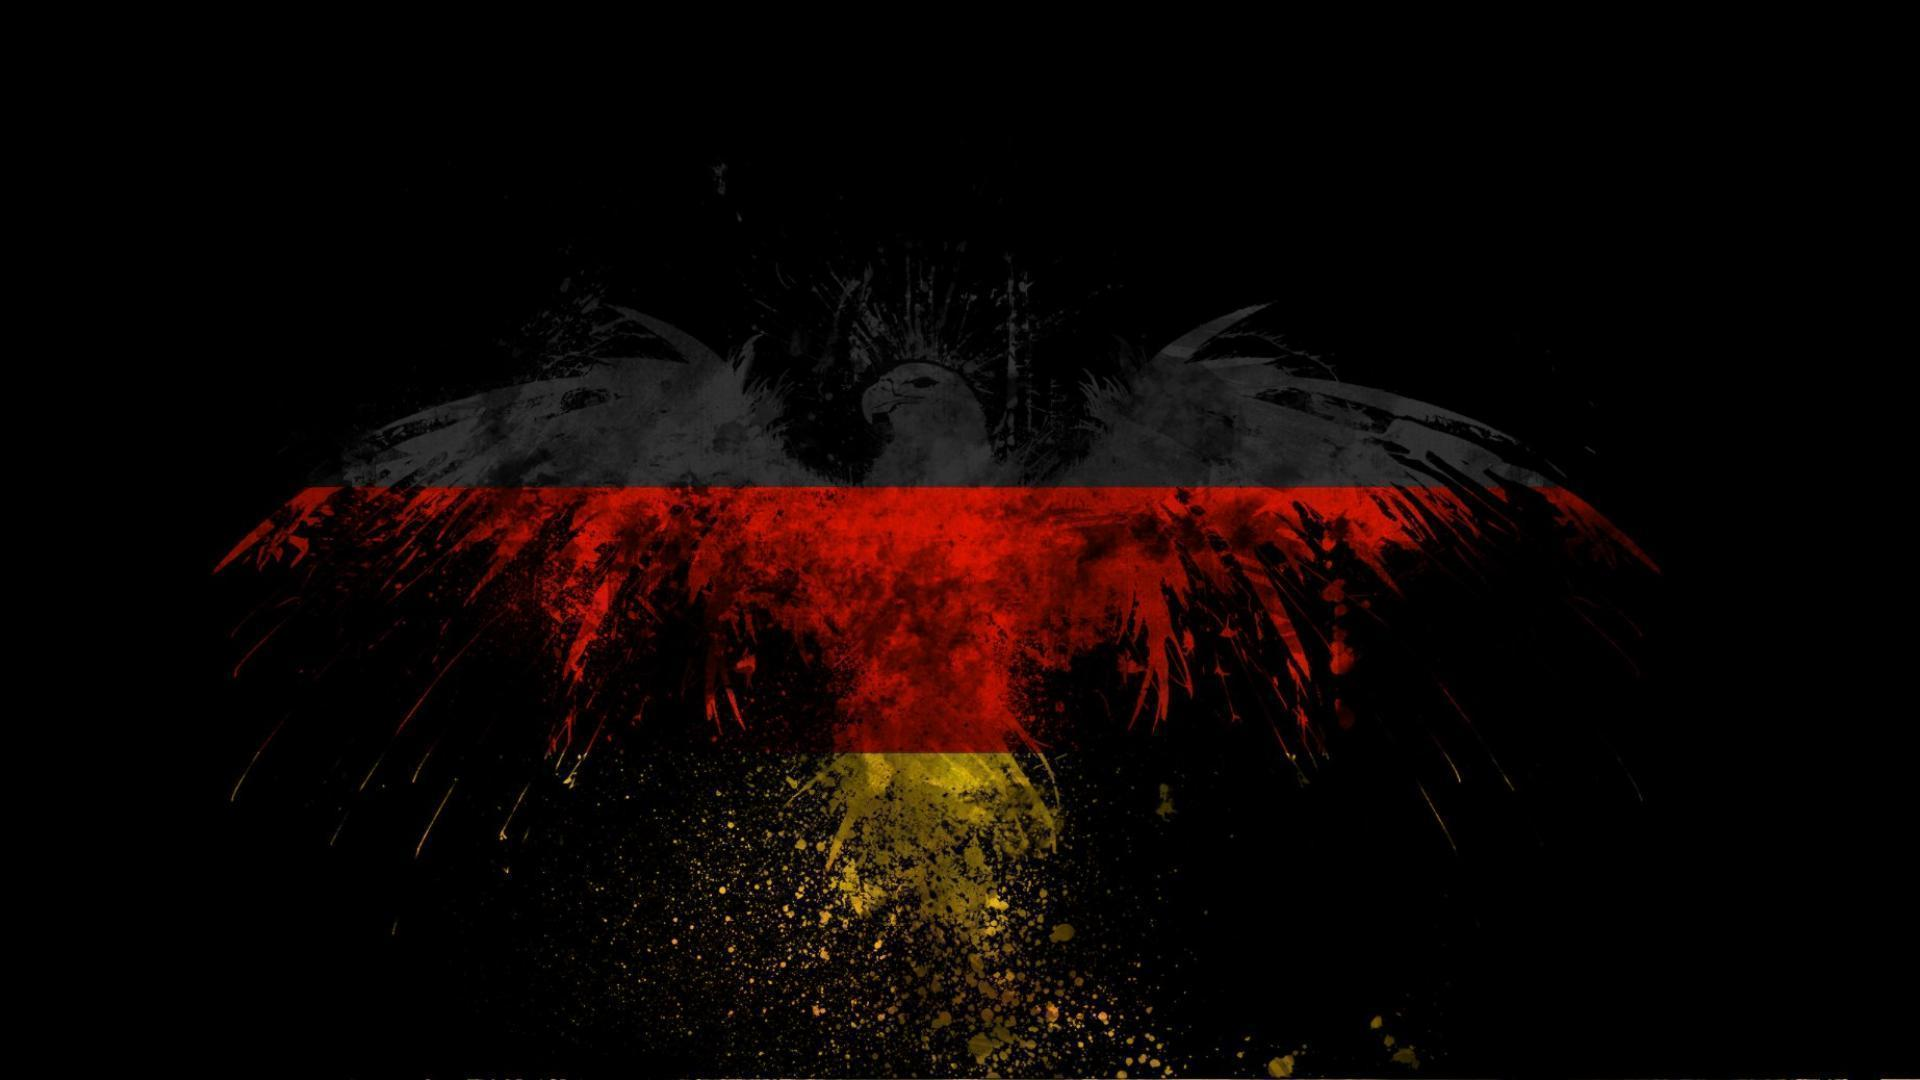 Hd Wallpapers German Flag 300 X 177 6 Kb Png | HD Wallpapers - 100 ...